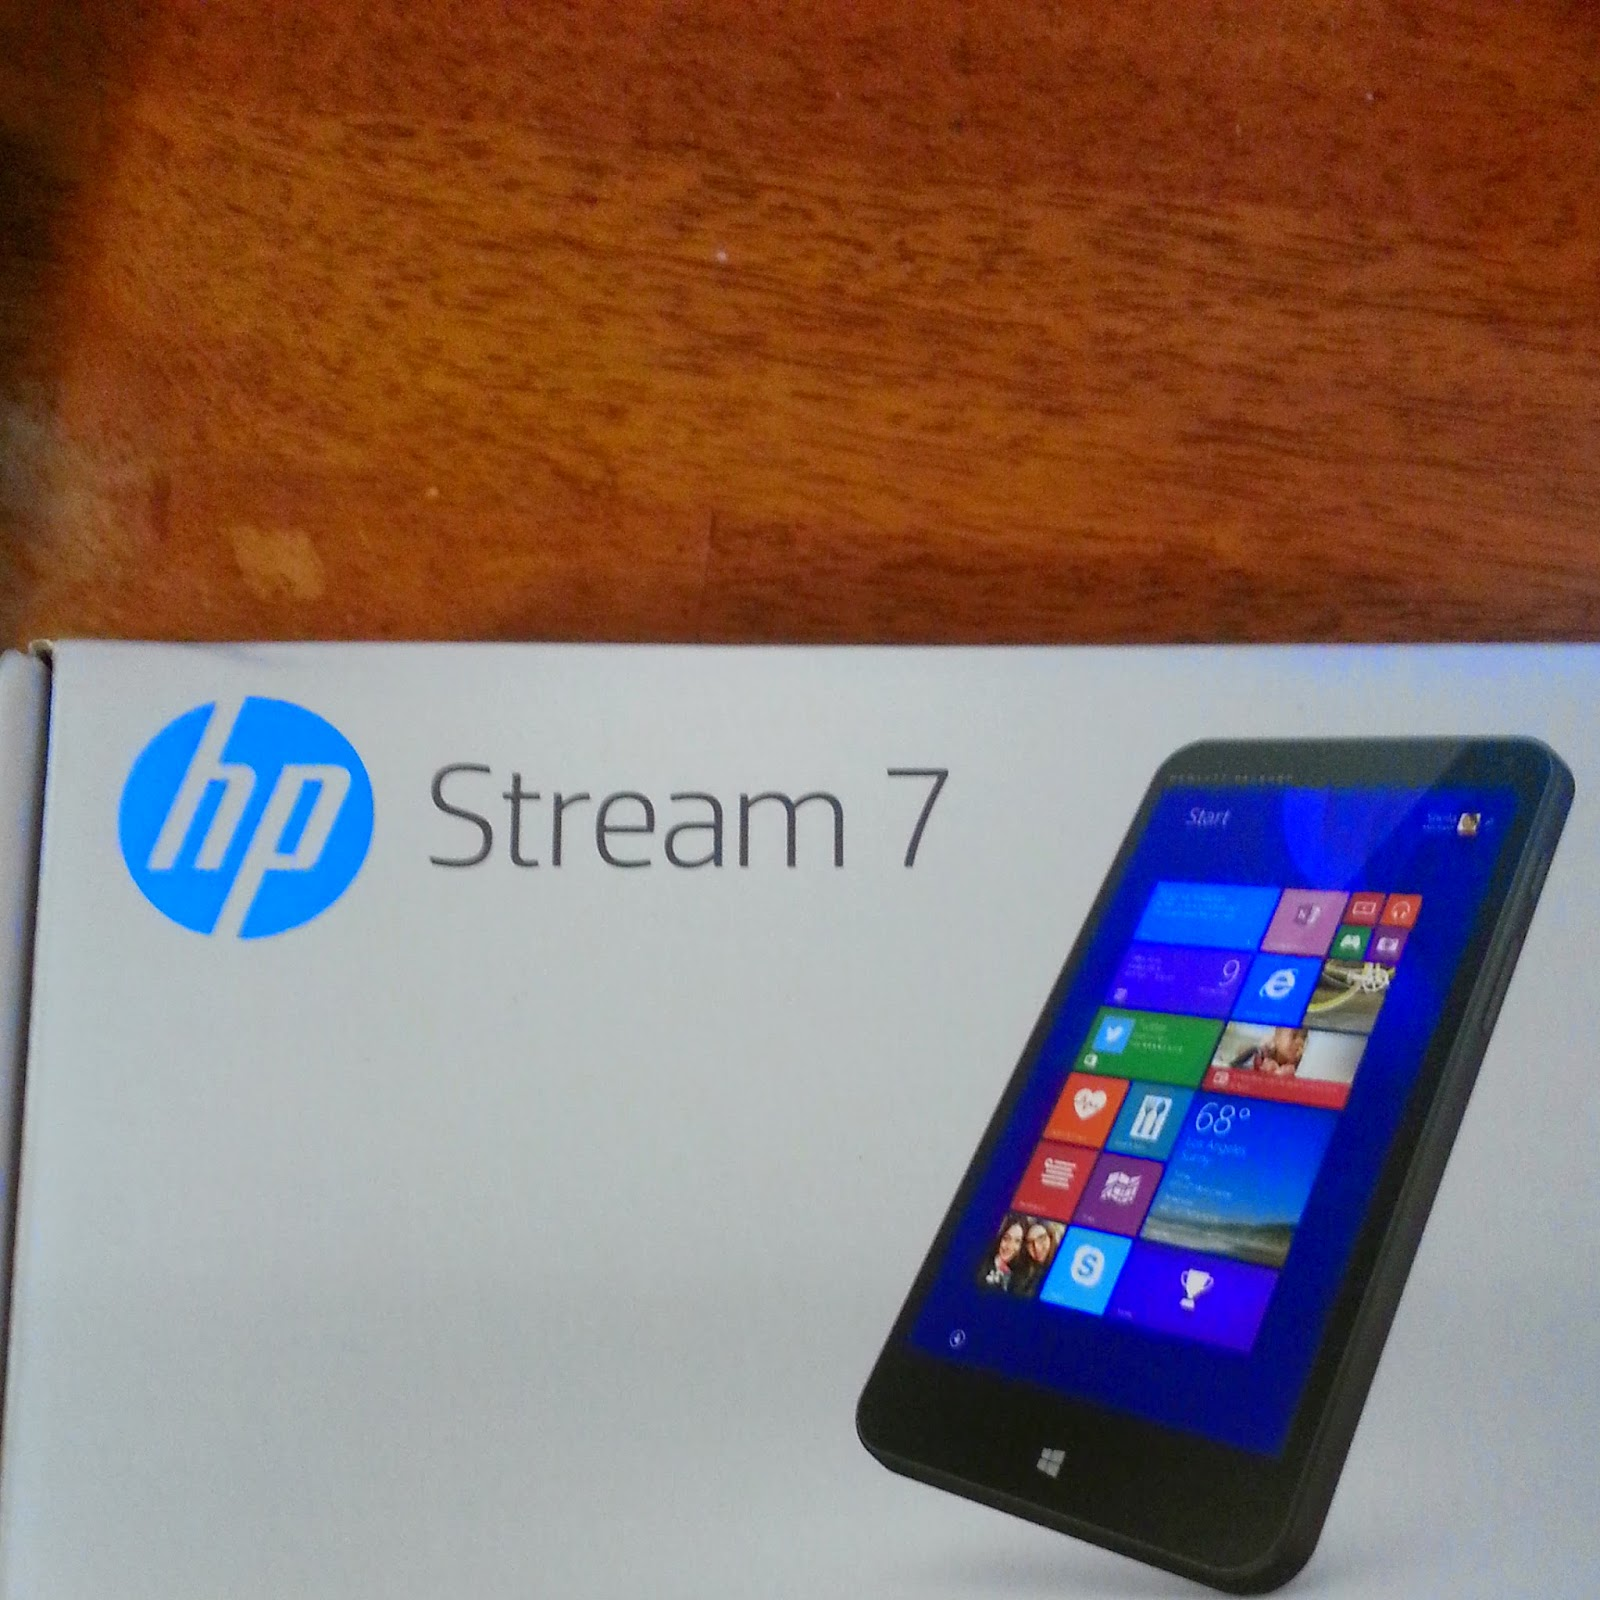 hp stream 7 tablet image